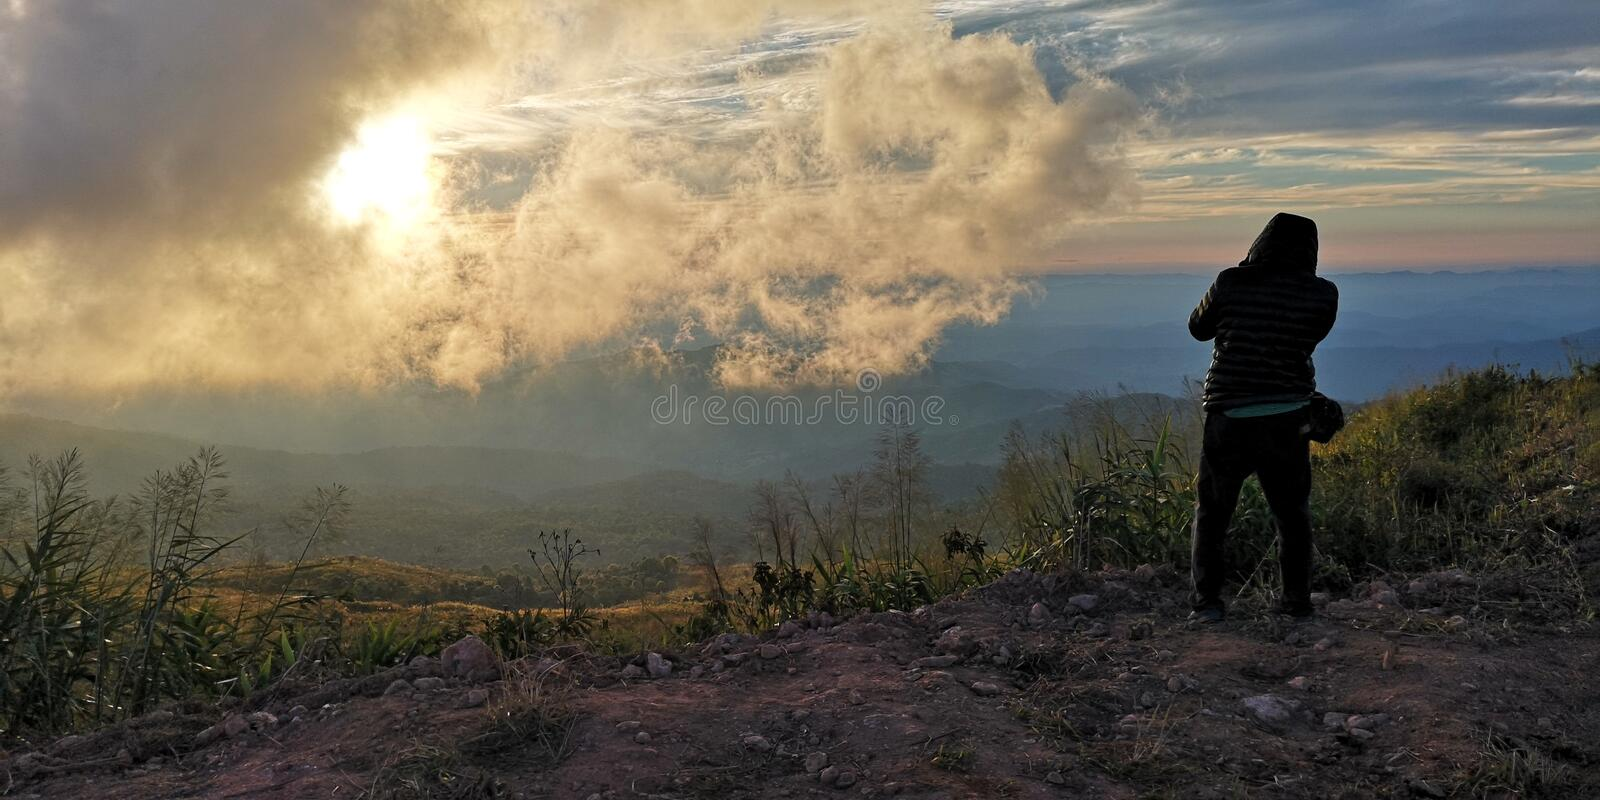 Peak mountain landscape with beautiful sunset, north of Thailand - Image. Top of Doi Suan Ya Luang mountain landscape with beautiful sunset, north of Thailand royalty free stock photos